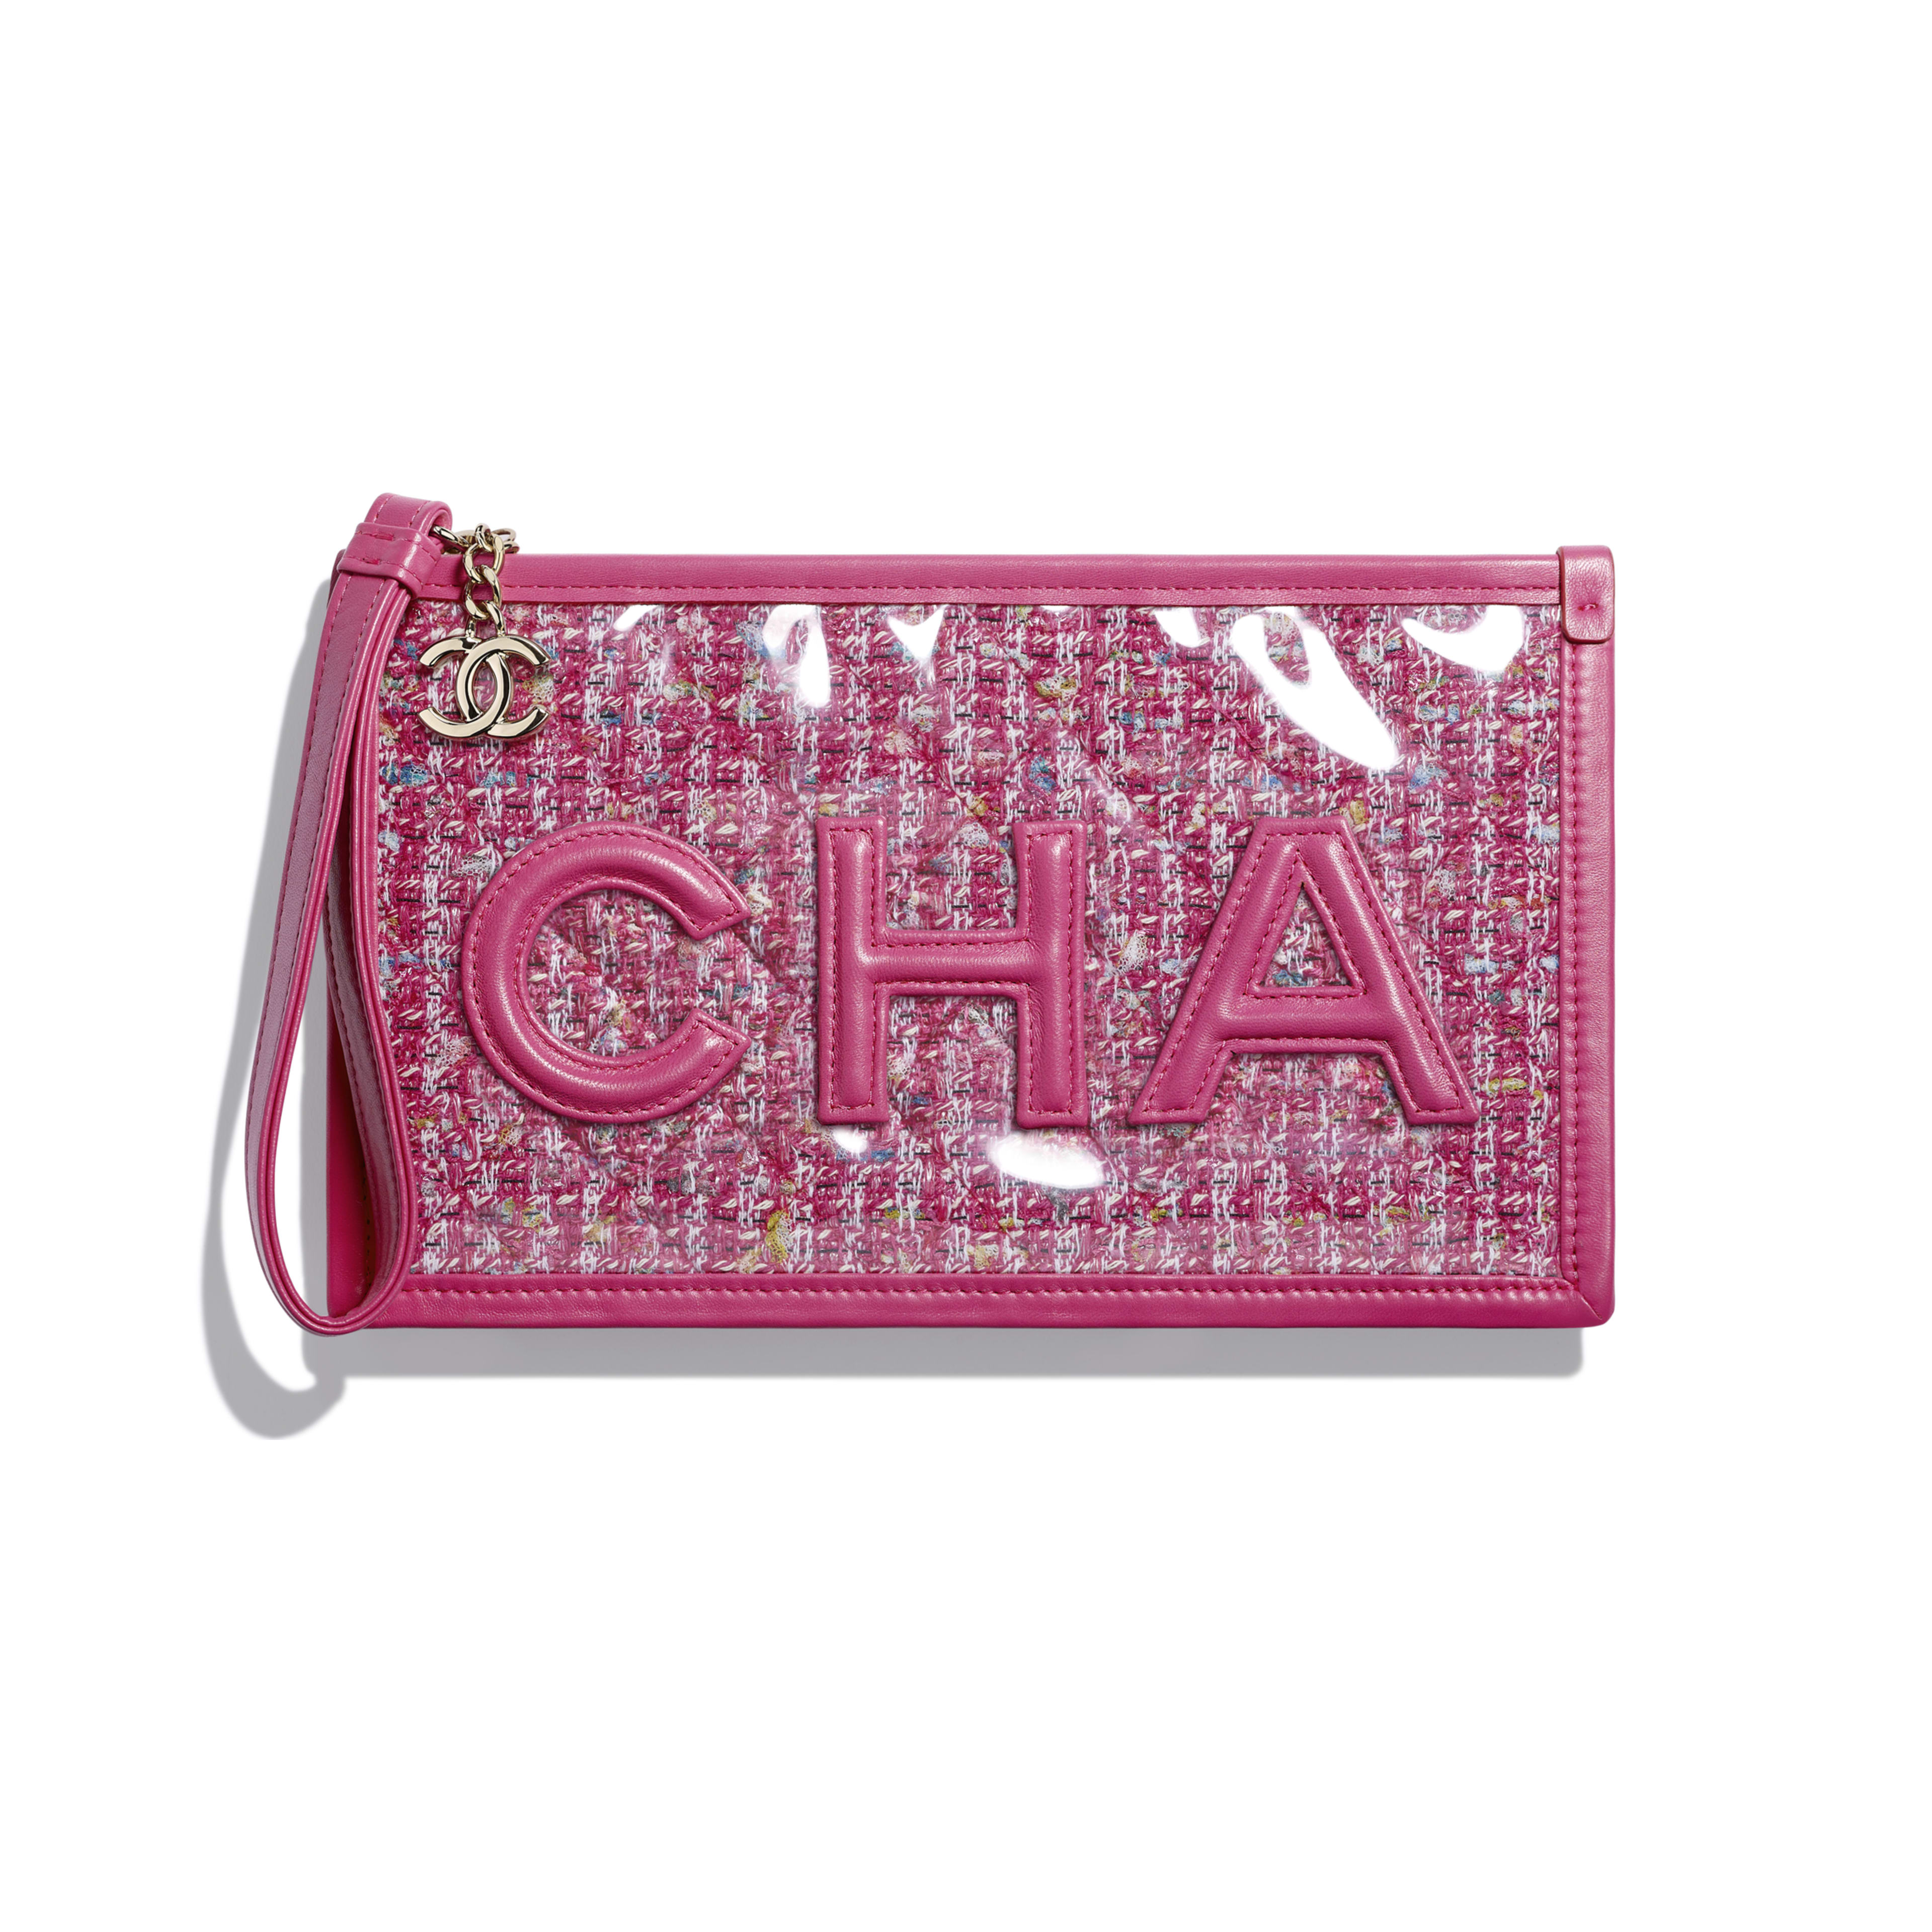 Pouch - Pink, Blue, White & Ochre - Tweed, PVC, Lambskin & Gold-Tone Metal - Default view - see full sized version